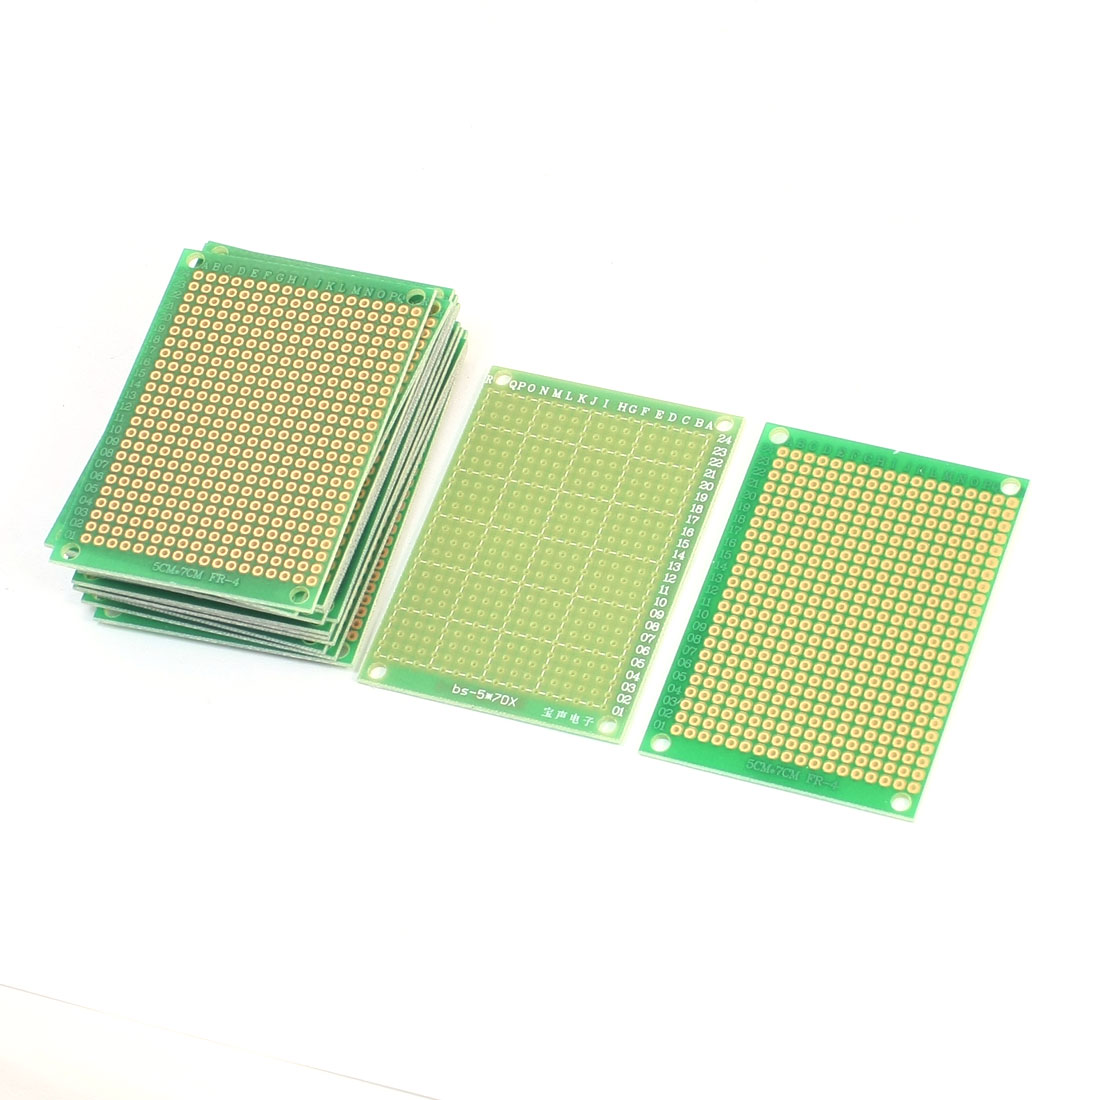 15Pcs 70mm x 50mm Single Side Prototype Perforated Glass Fiber Universal PCB Circuit Board Breadboard